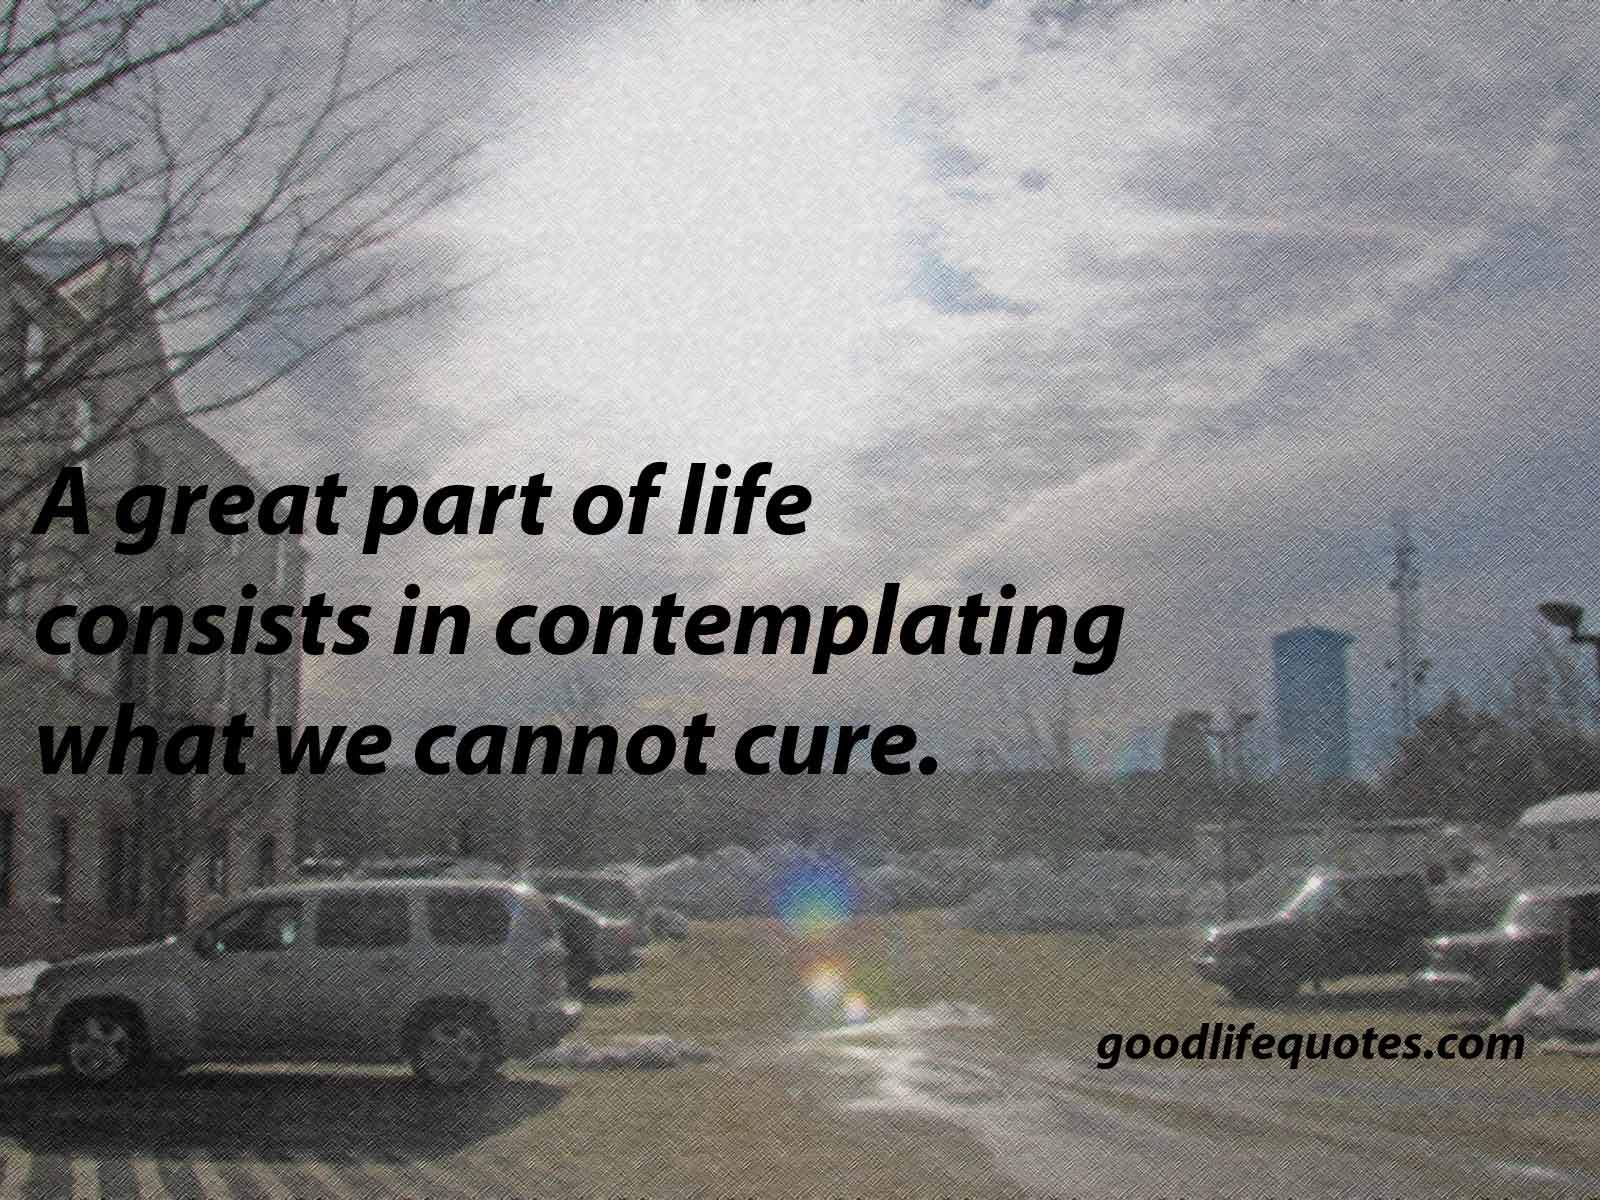 Contemplating Life Quotes 15